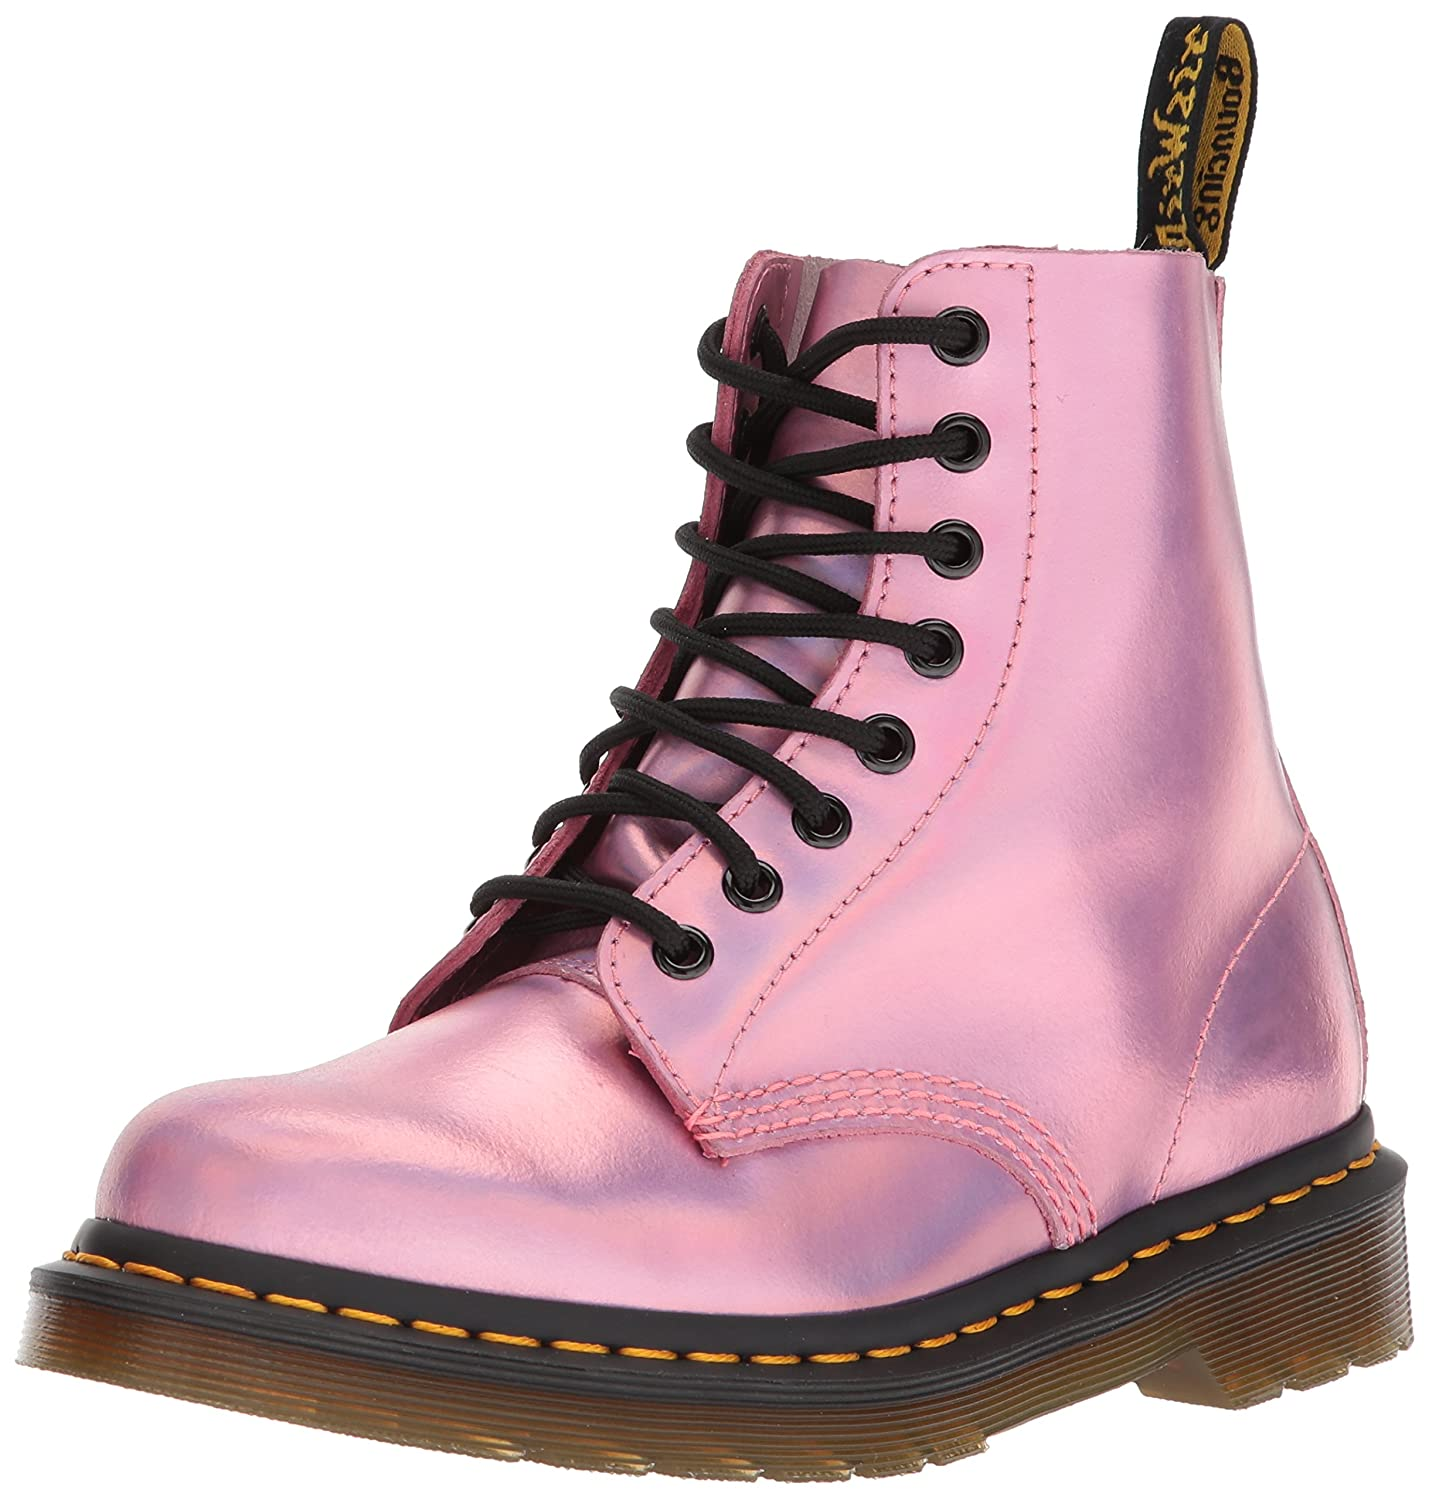 Dr. Martens Women's Pascal RS Mallow Pink Ankle Boot B072HM6YN9 4 Medium UK (6 US)|Mallow Pink